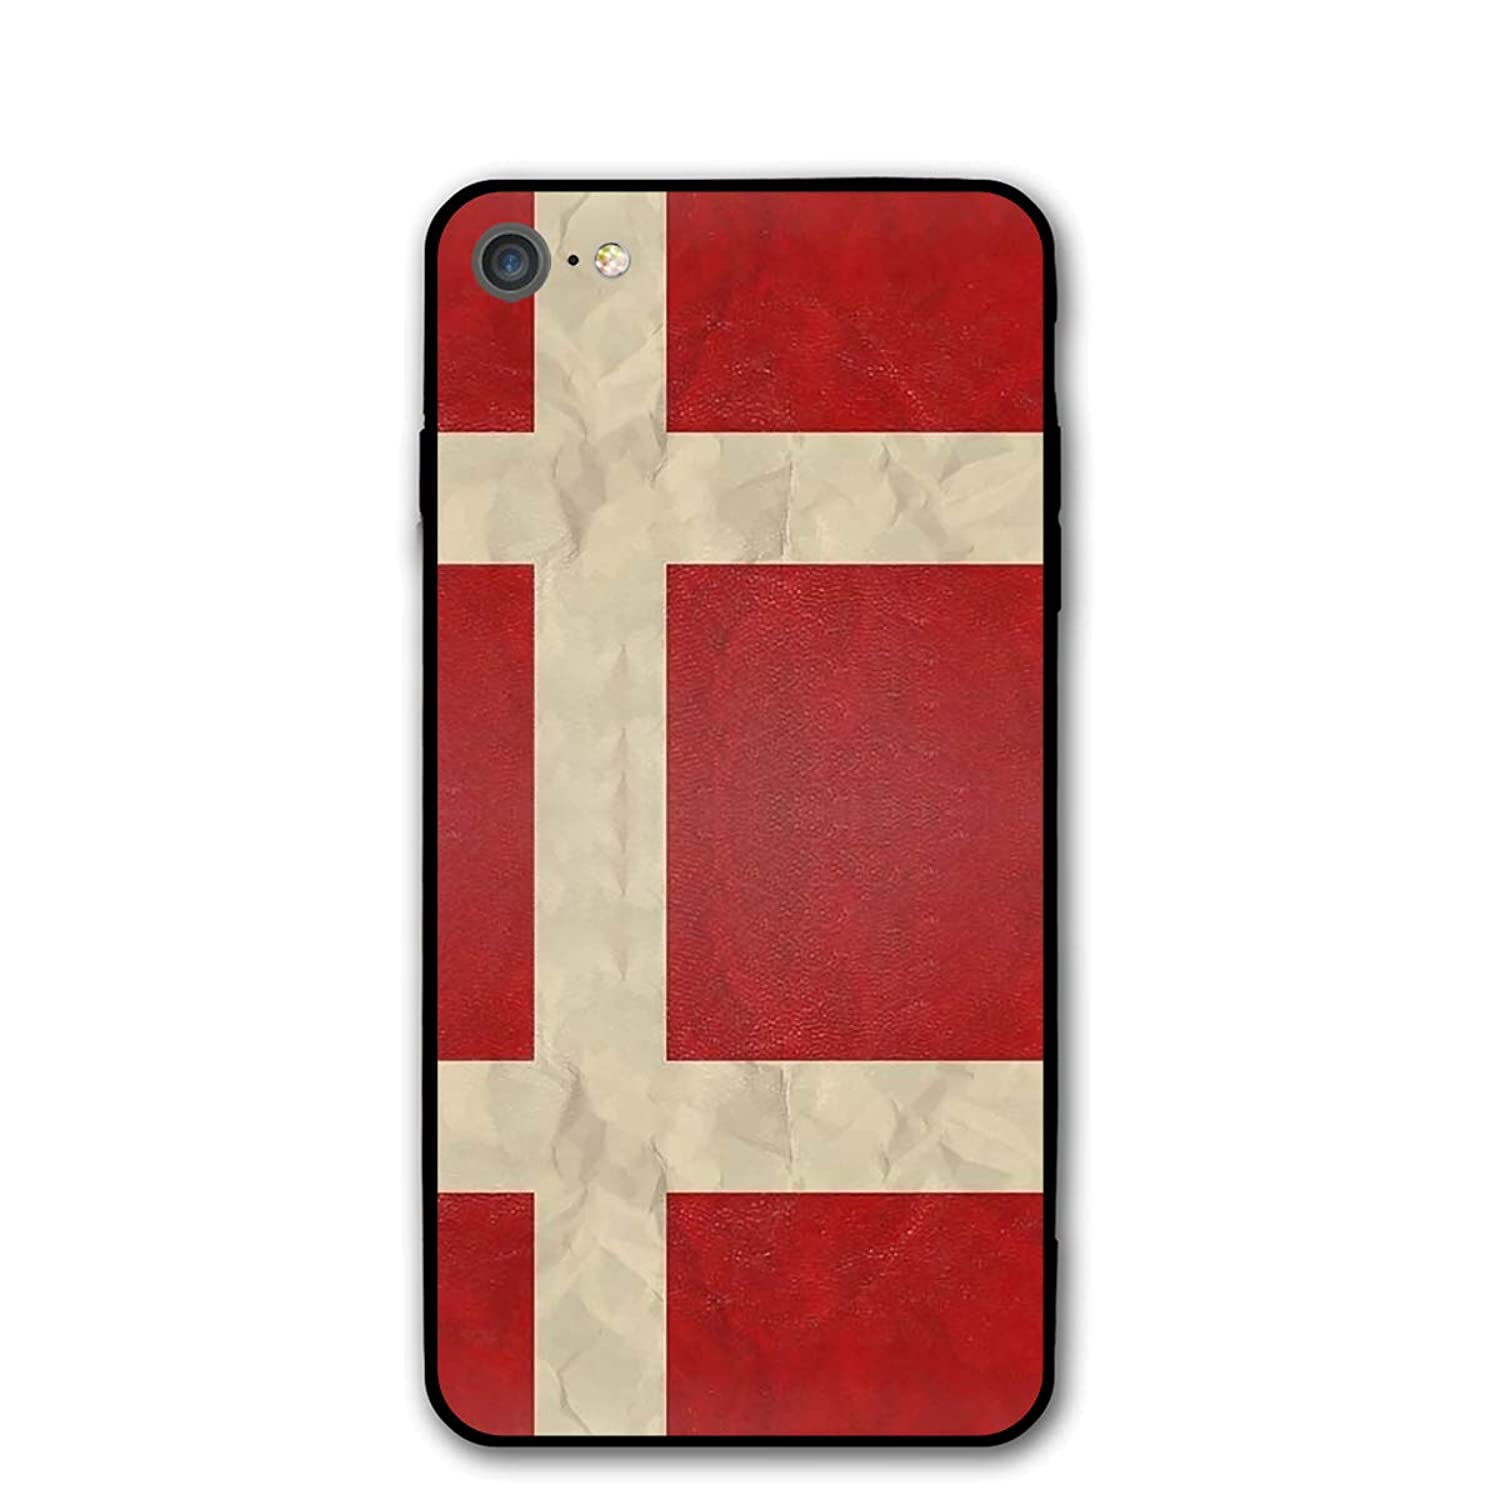 Danish Flag Street Fashion IPhone7/8 Case£? Cute Slim Flexible Soft TPU Rubber Cases Cover for iPhone 7/8 Anti-Collision Case 4.7 Inch Shock Absorption/Impact Resistant